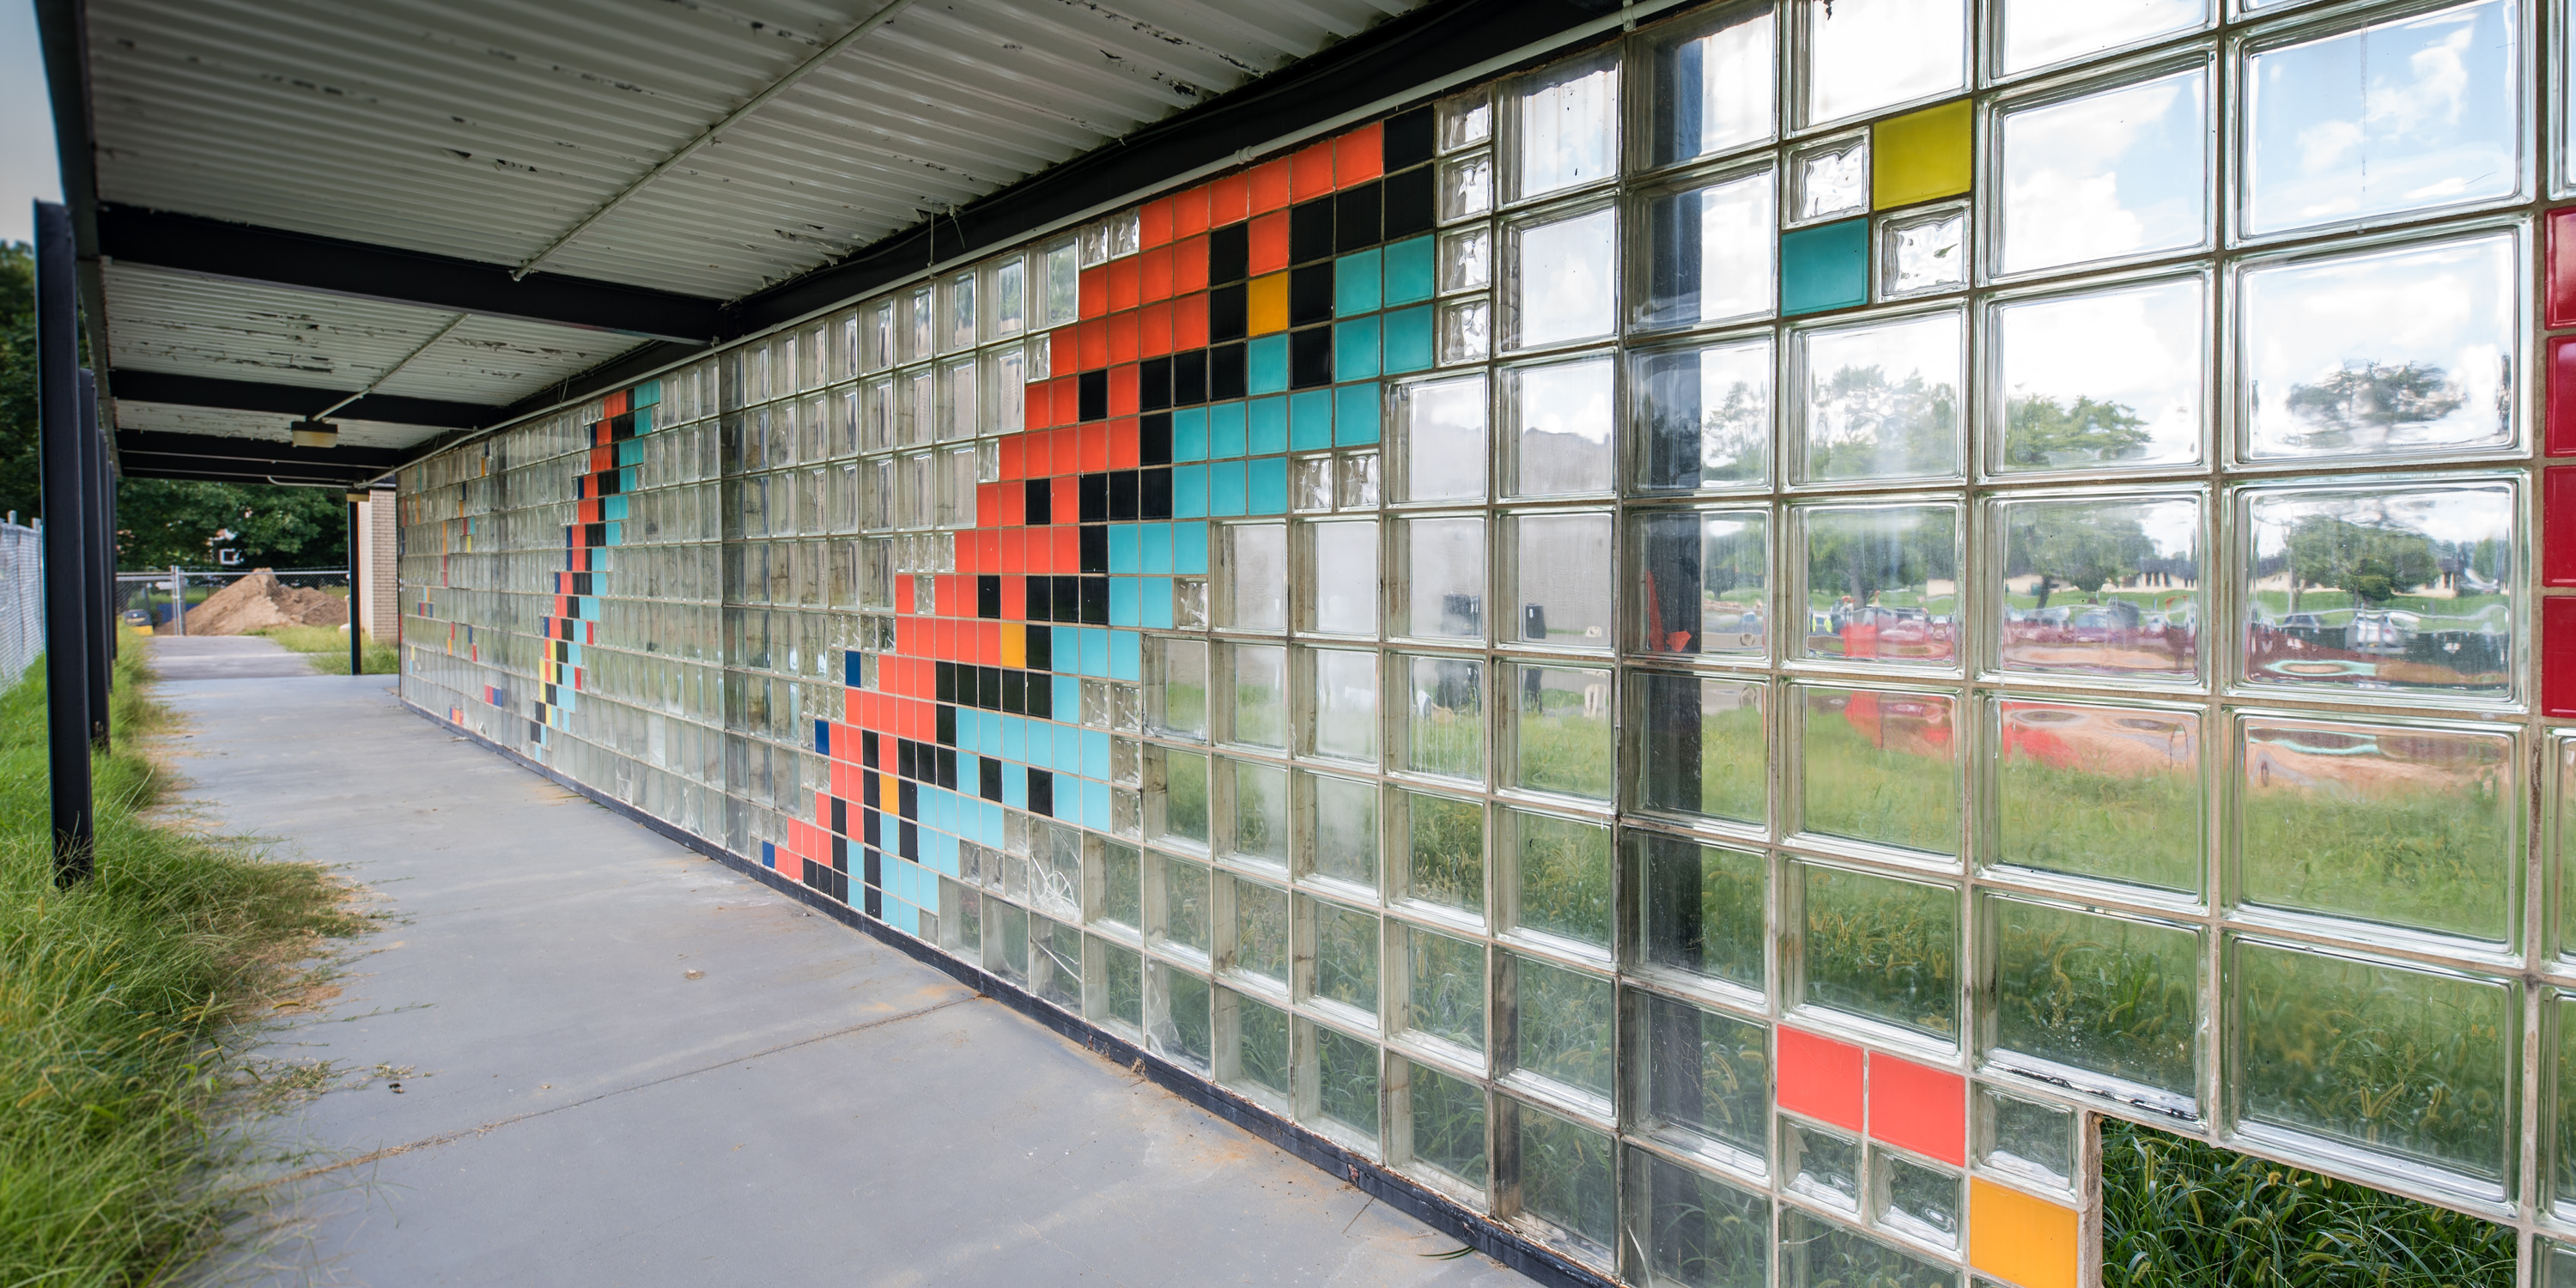 wall of multicolored glass bricks representing various isotopes